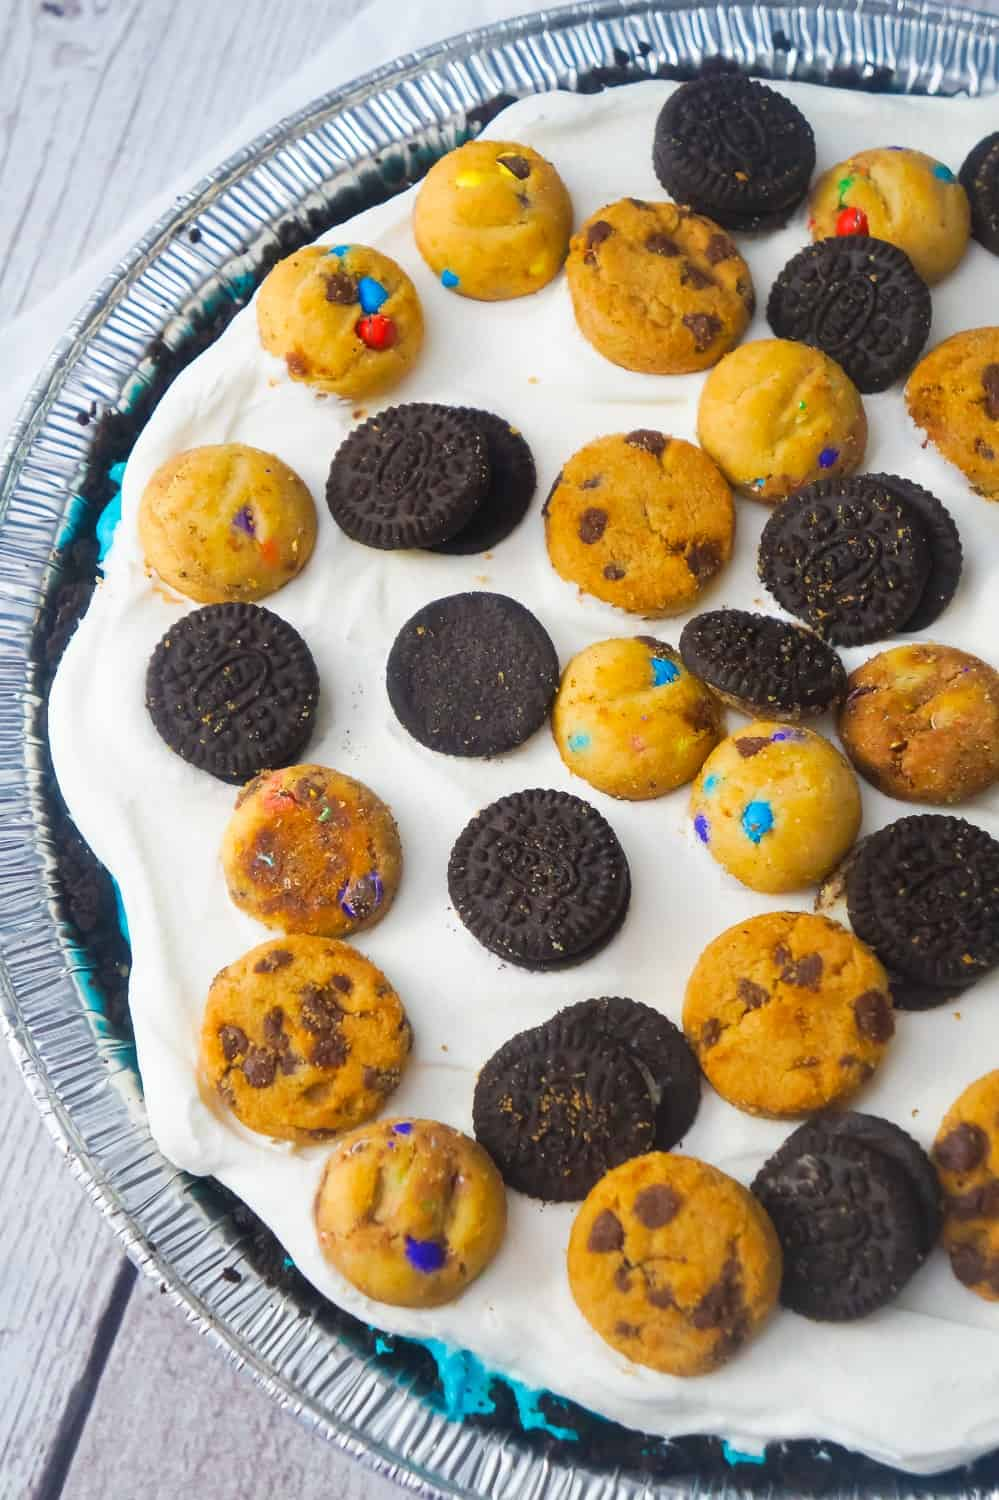 No Bake Cookie Monster Pie is an easy dessert recipe your kids will love.This colourful pie is made with instant pudding and Cool Whip in an Oreo crust and loaded with a variety of mini cookies.